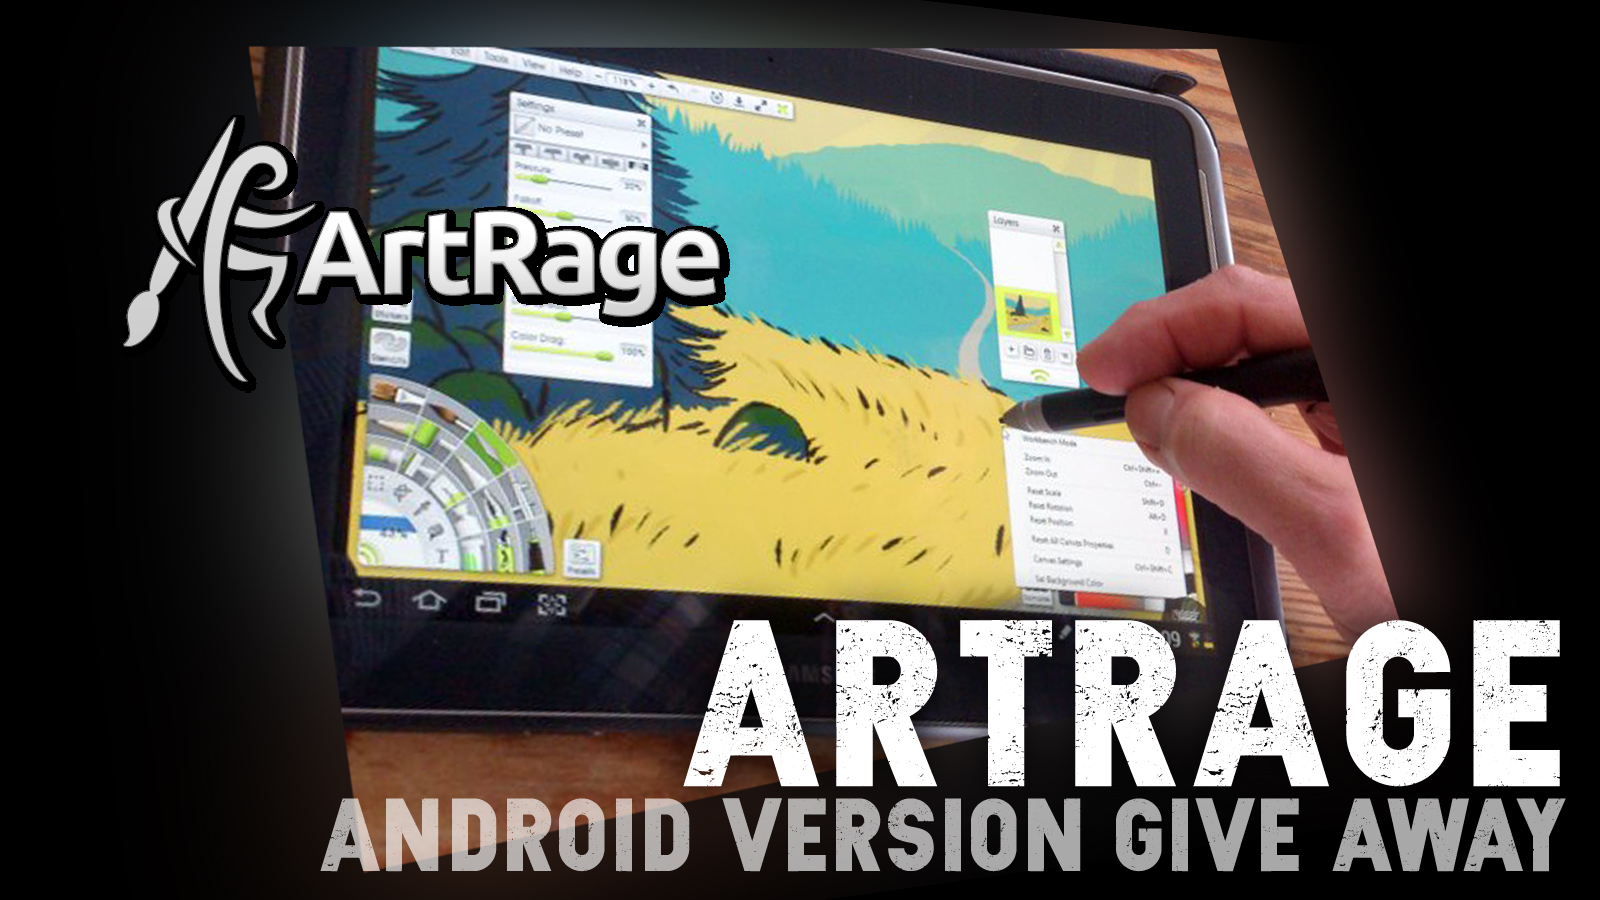 ArtRage on Android Give Away